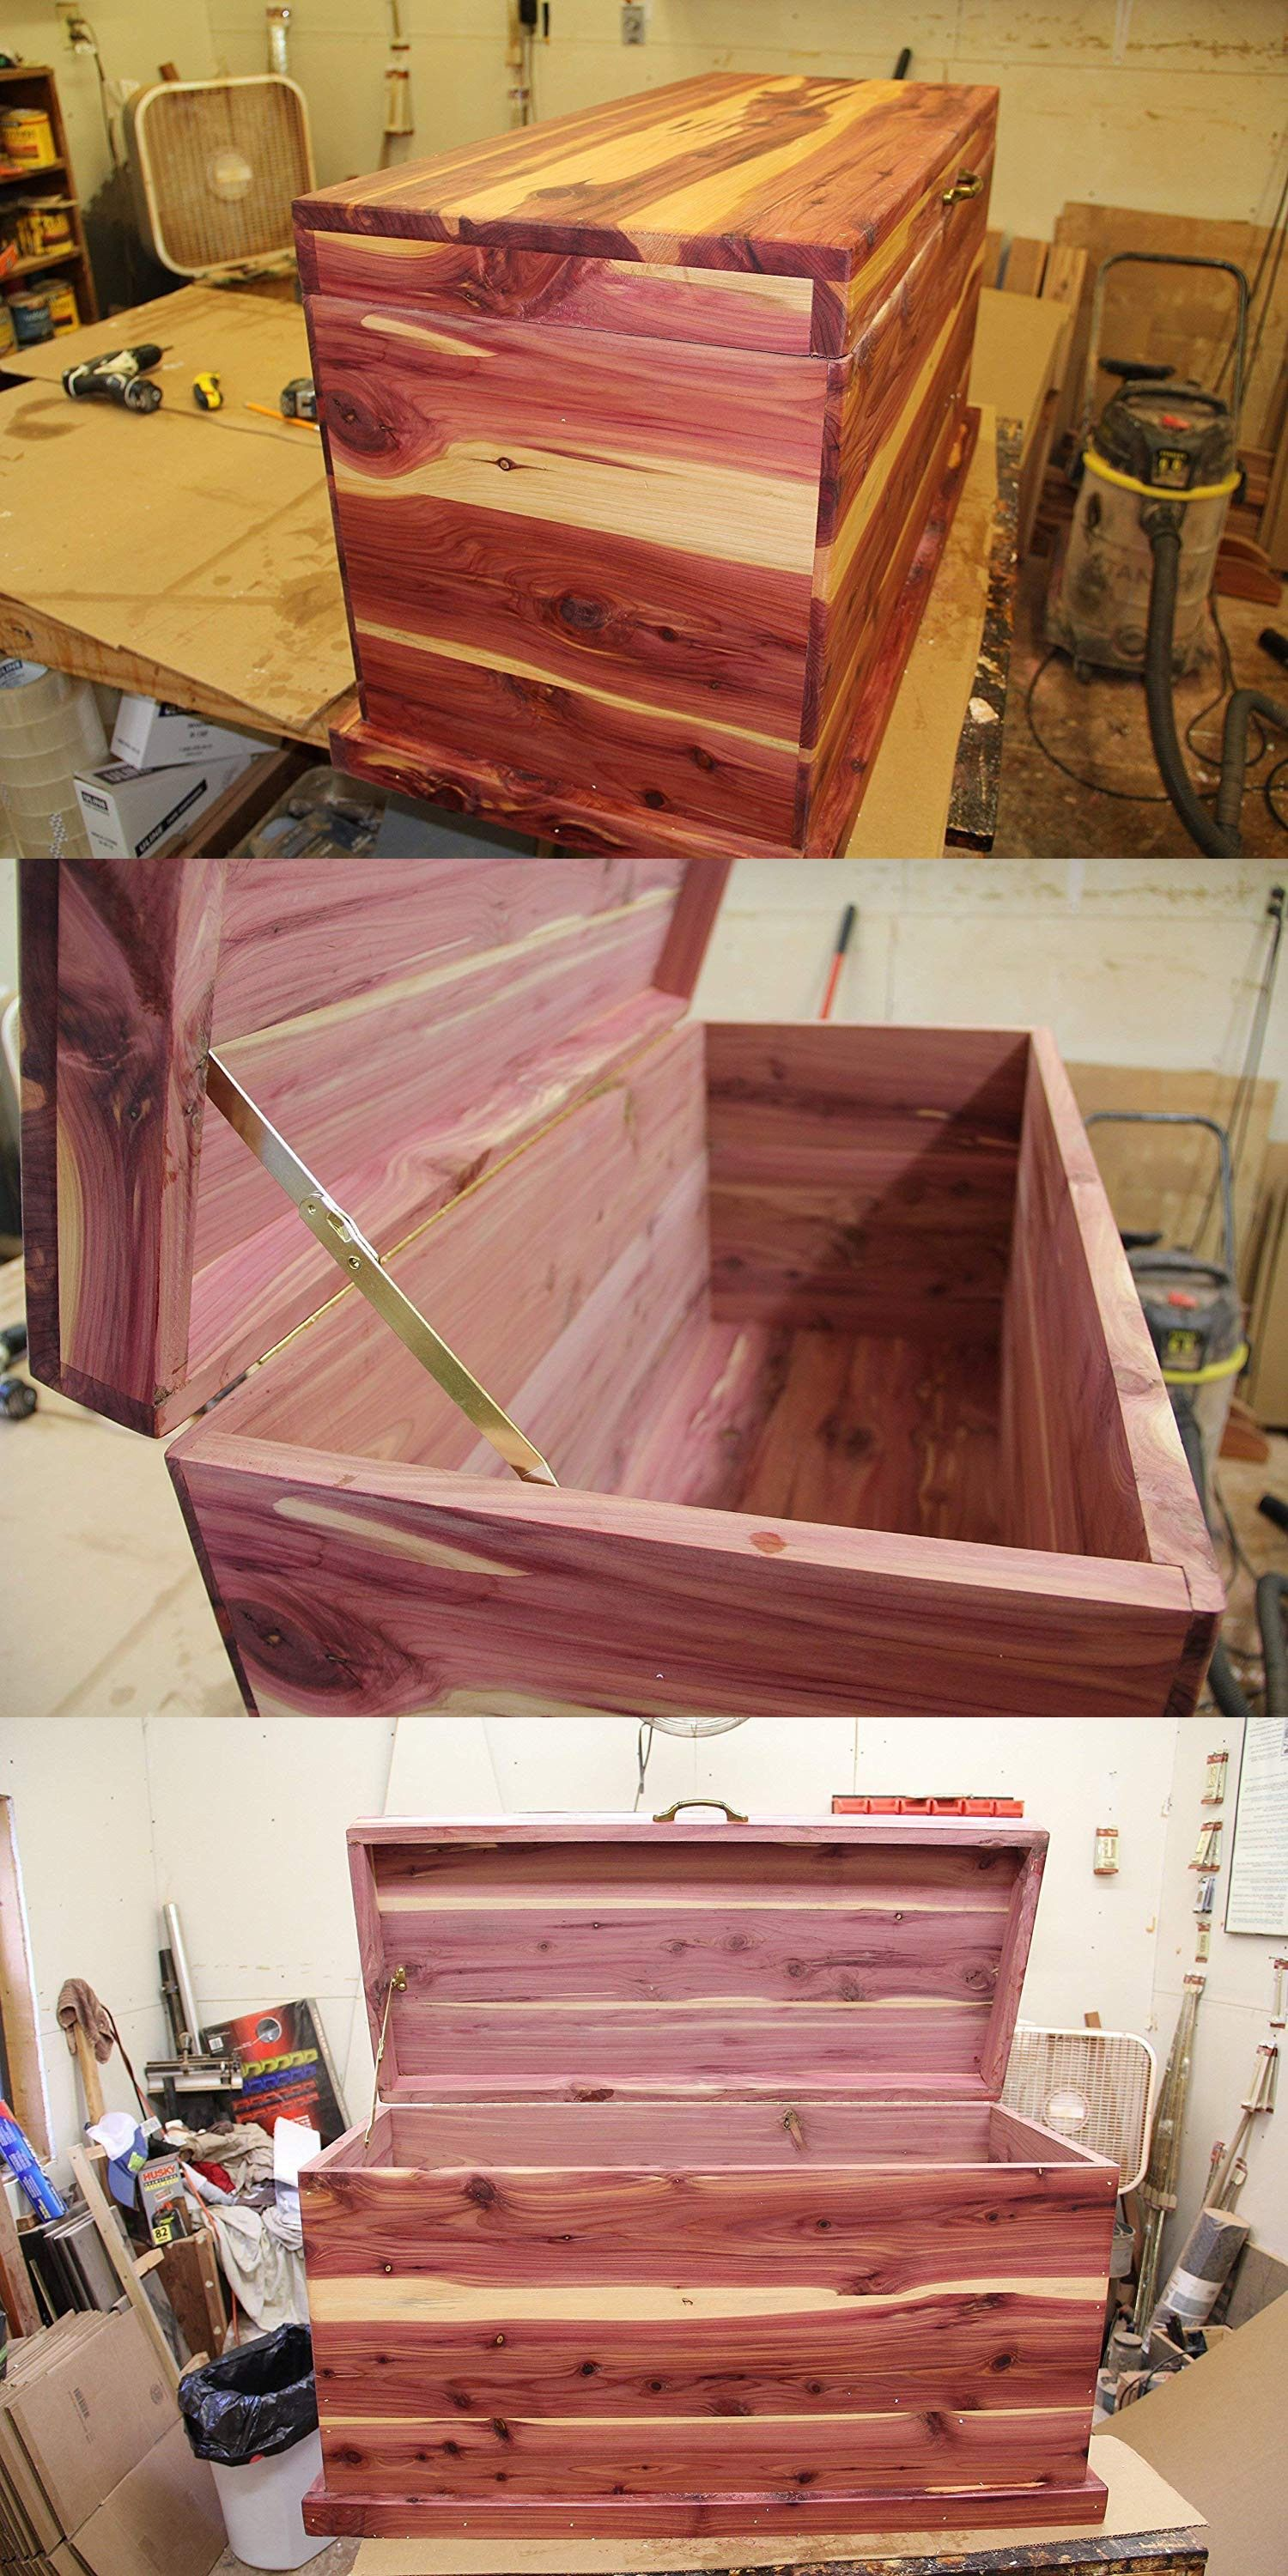 Cedar chest hope chest blanket box bedroom furniture toy chest